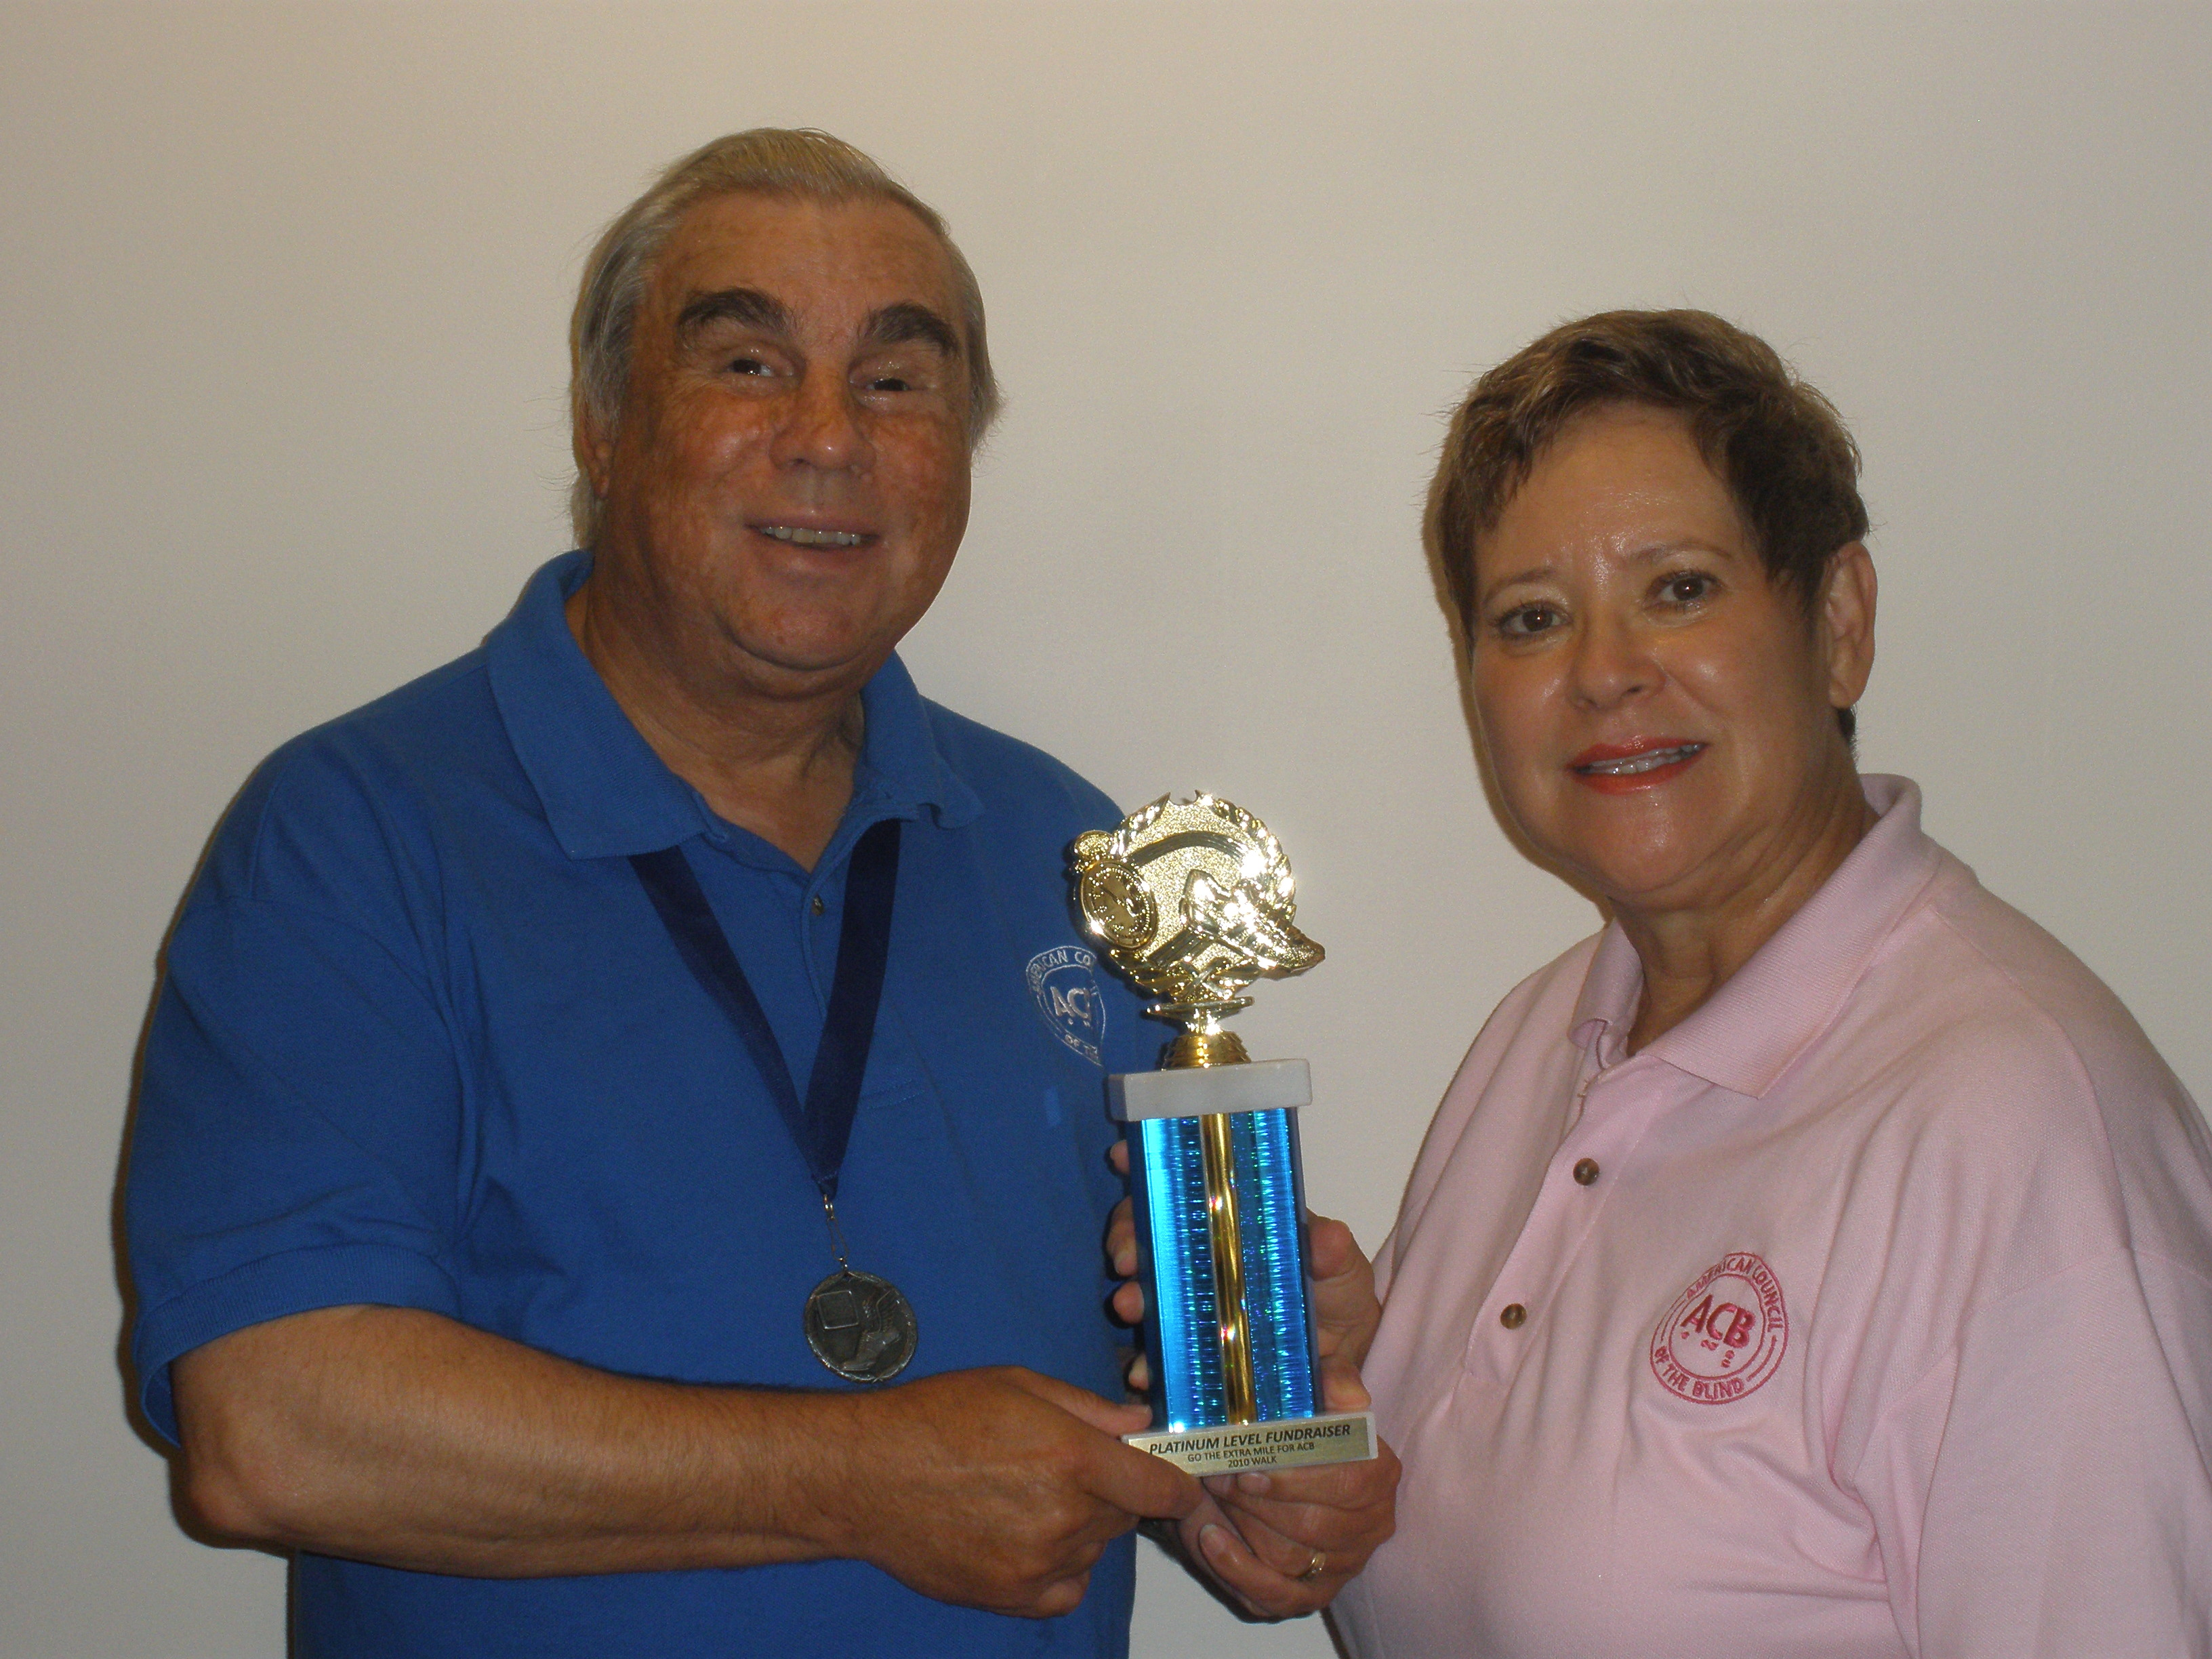 Ron and Palma Milliman with ACB Walk Trophy